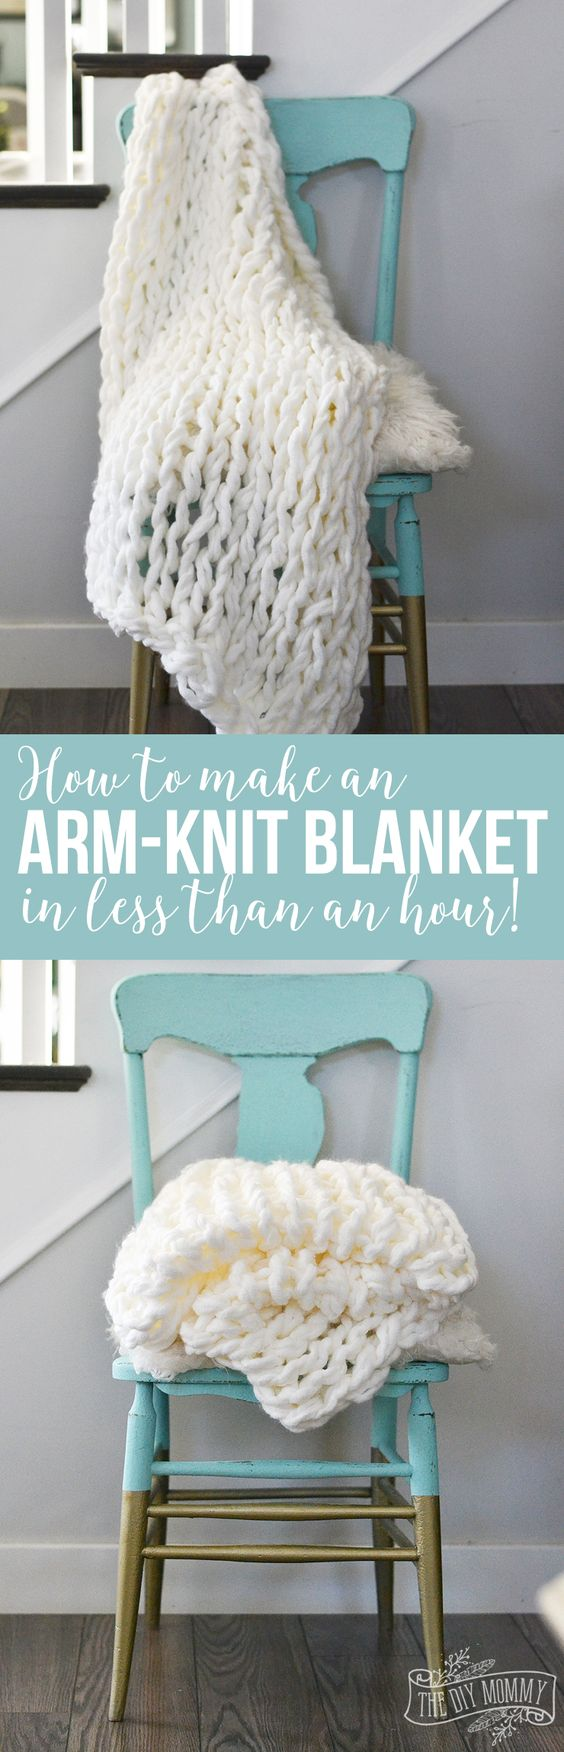 Make an Arm Knit Blanket in Less Than an Hour.